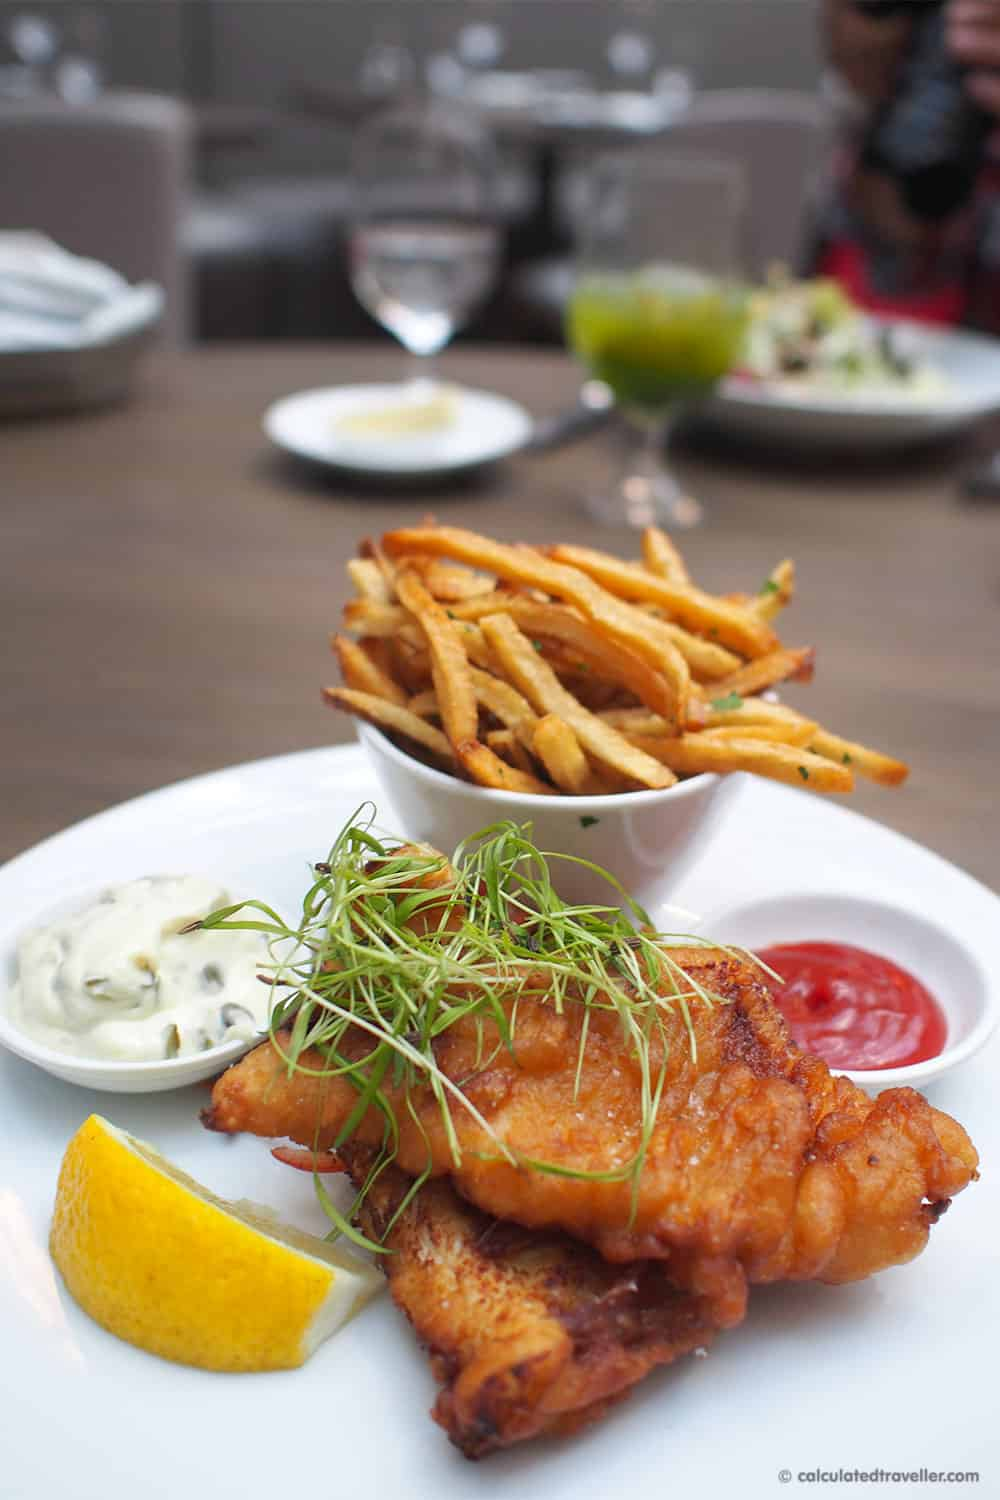 Exploring the Village of Yorkville Toronto. A Day of Food, Architecture and History - Sassafraz Restaurant Fogo Island Cod n Chips (with a ginger beer batter) caper remoulade and coleslaw